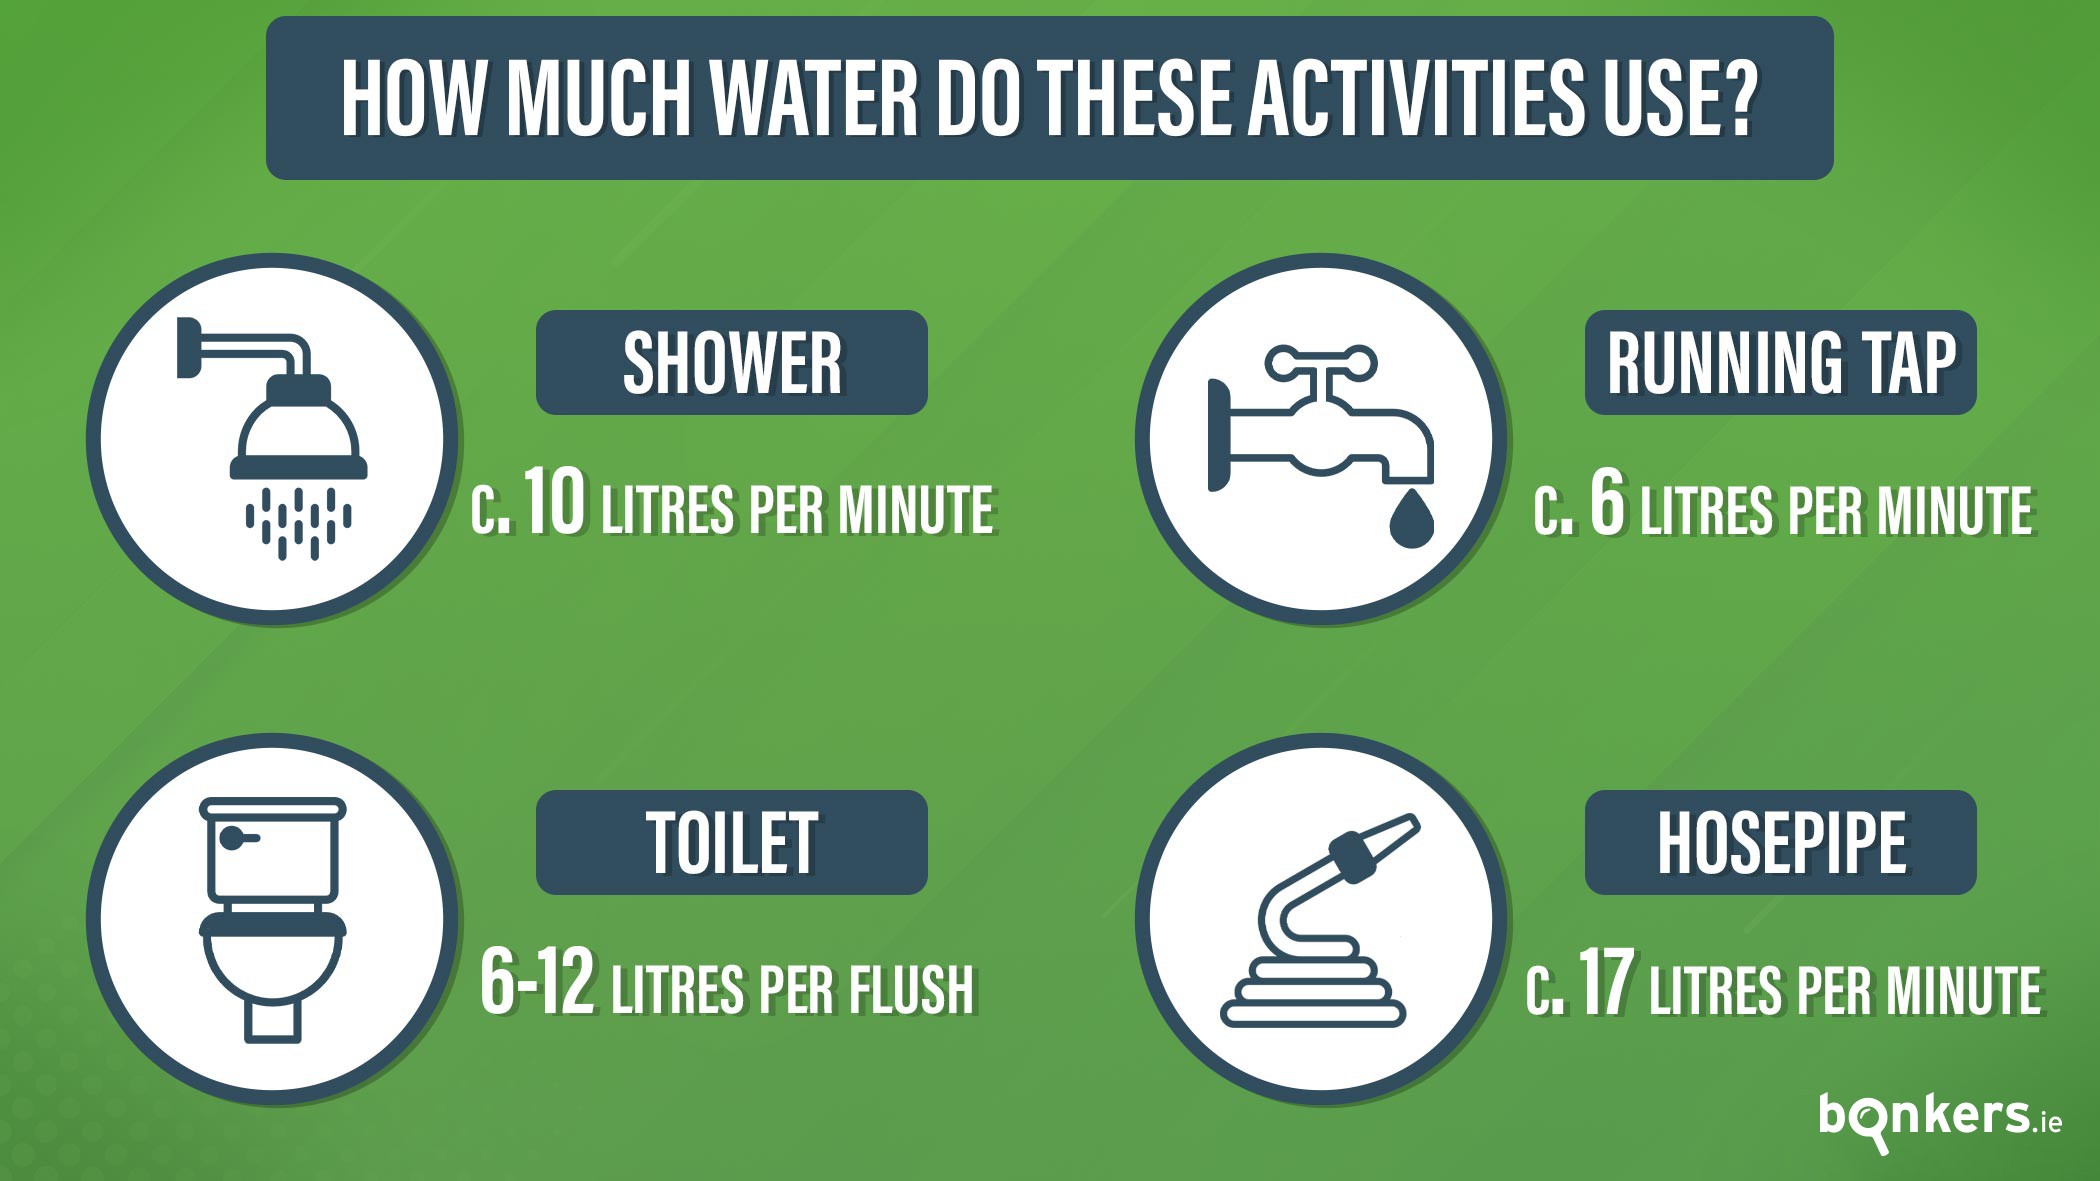 How much water does a household use?